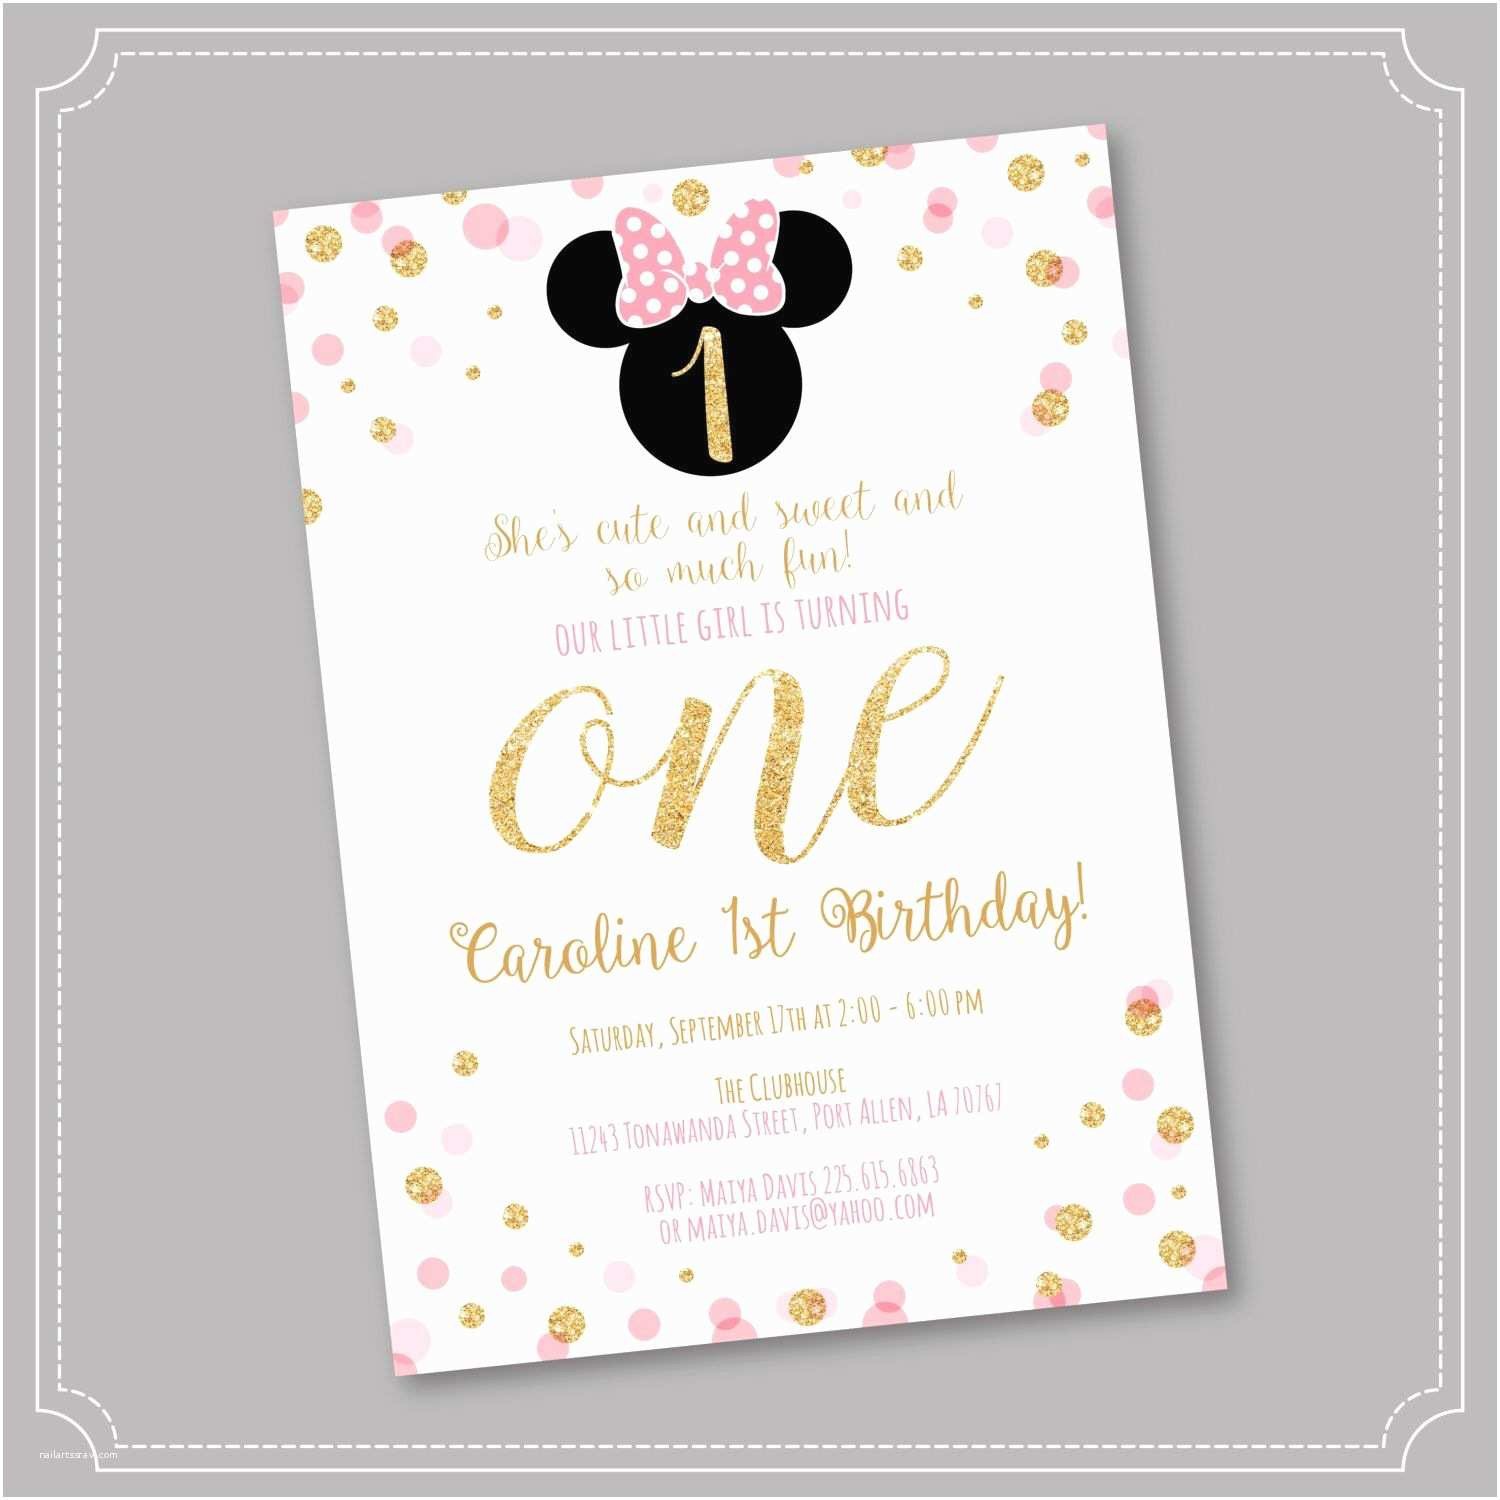 Minnie Mouse 1st Birthday Invitations Off Pink and Gold Minnie Mouse Birthday Party